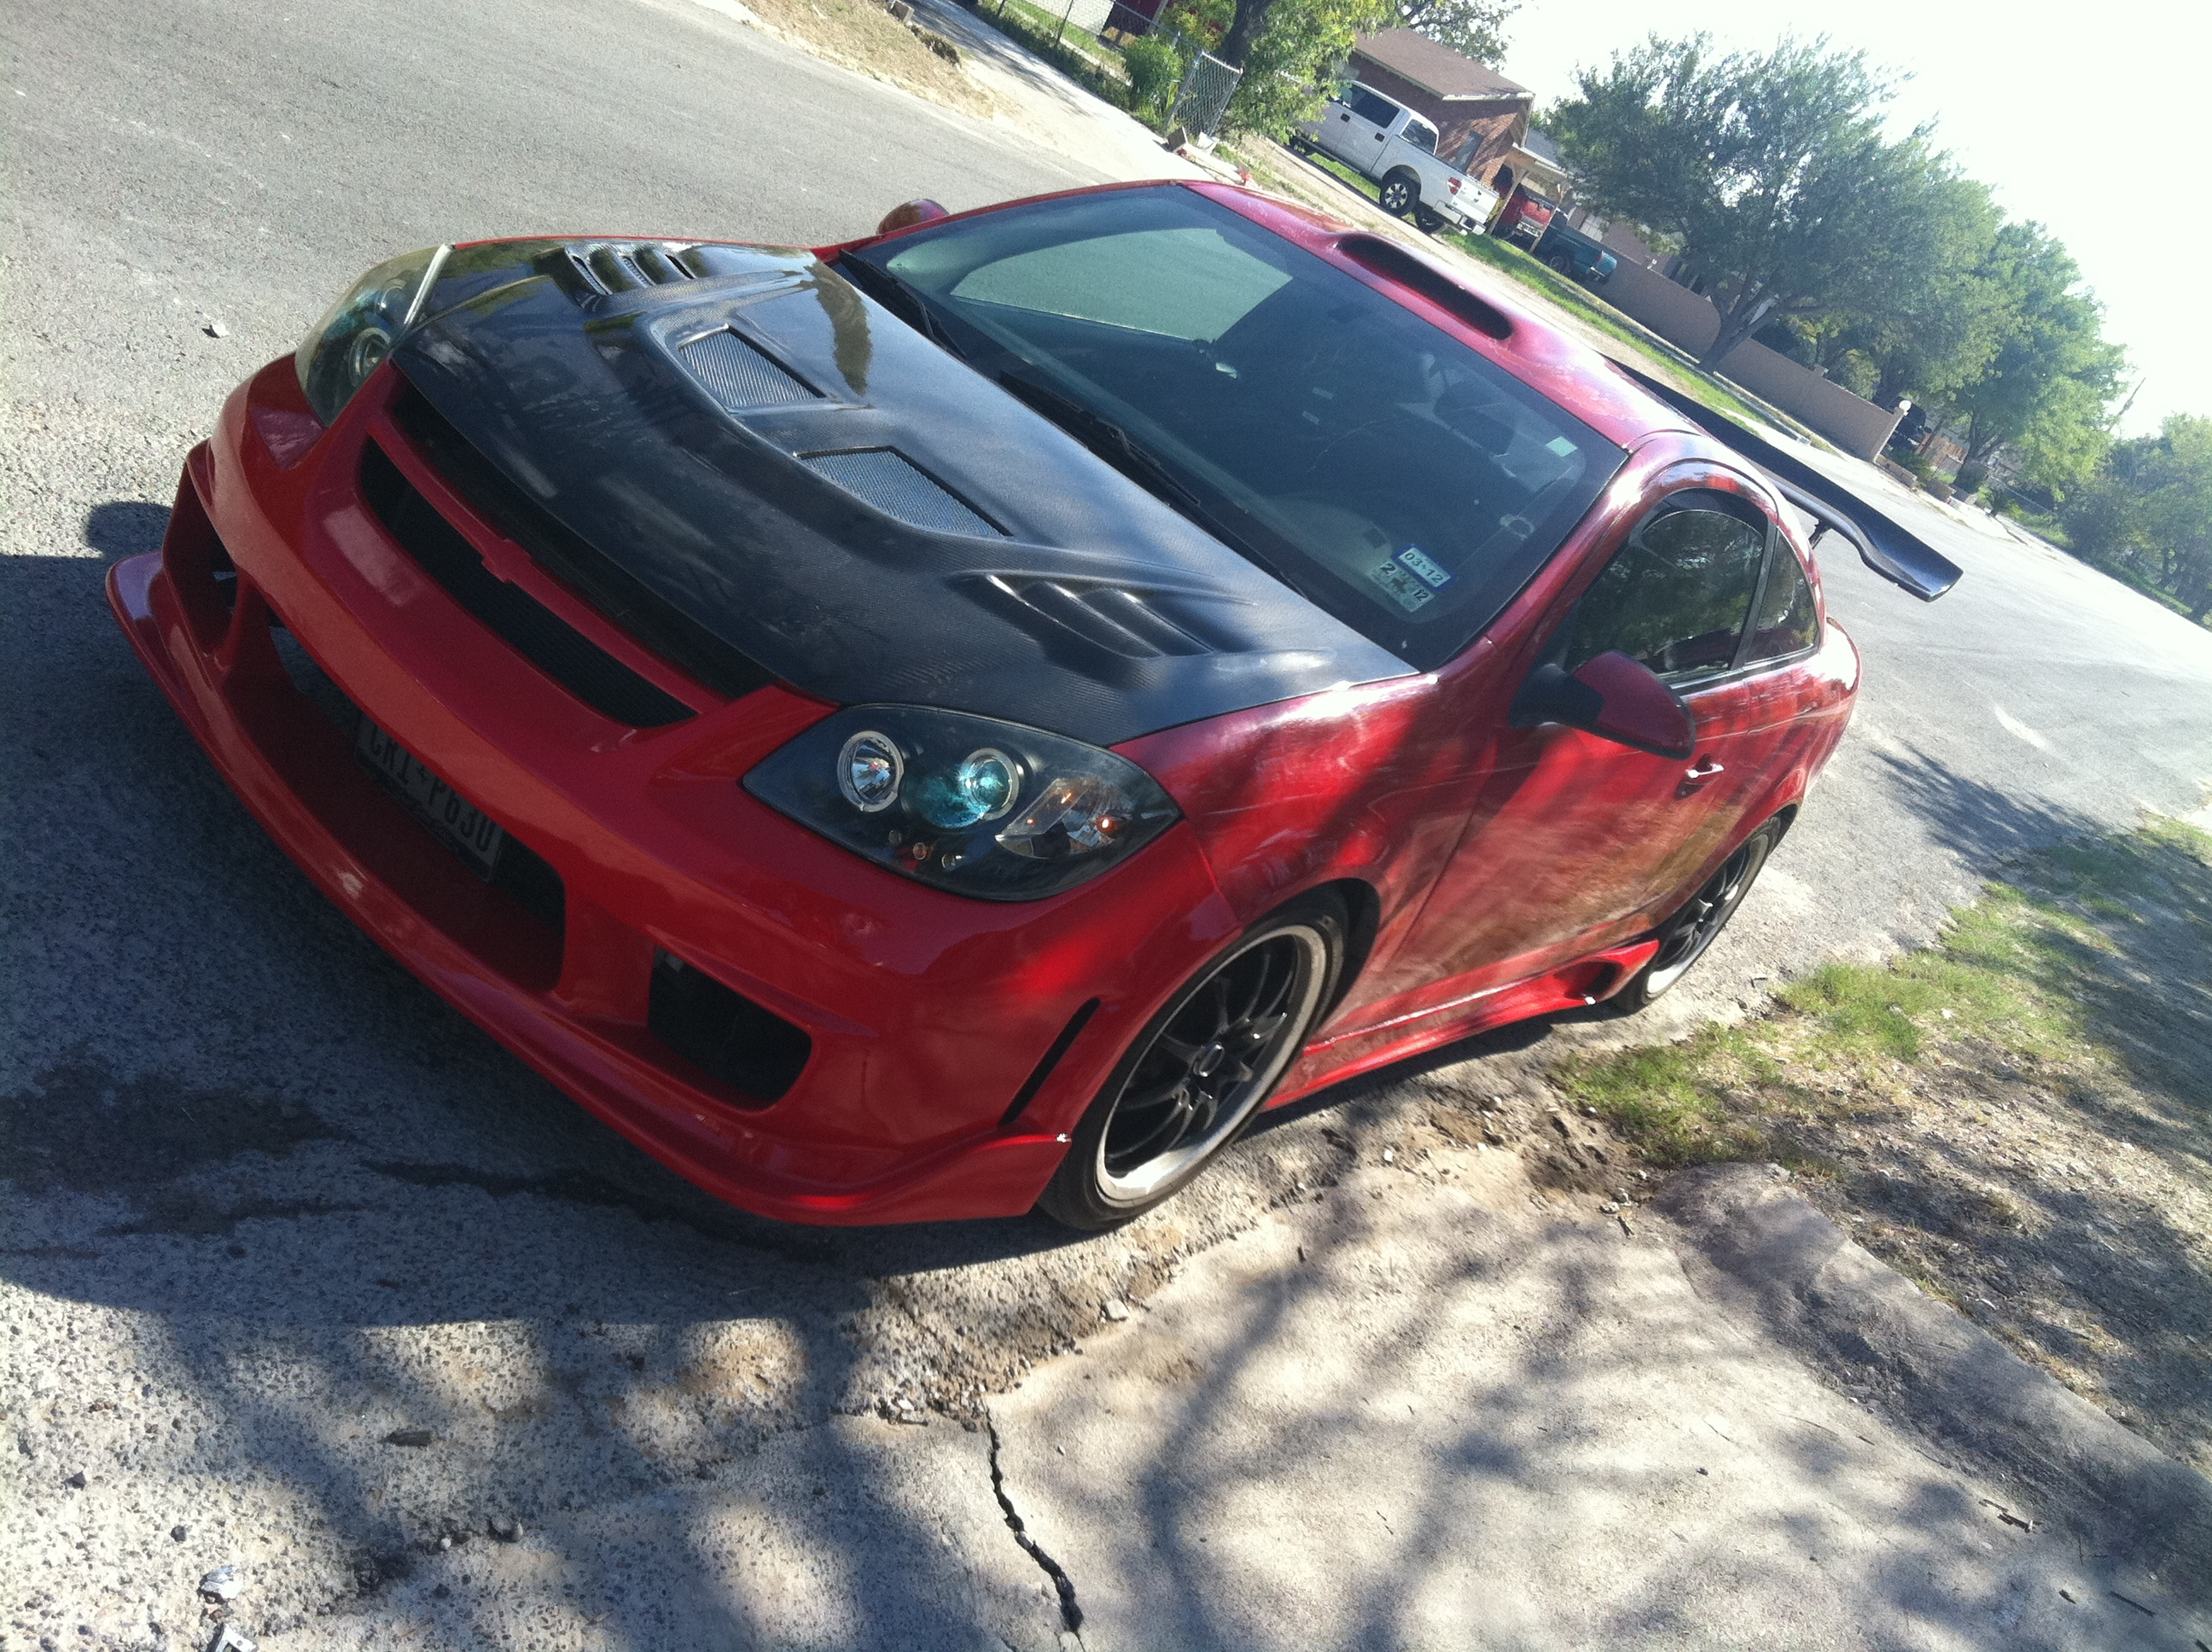 junior_reyez 2007 pontiac g5coupe 2d specs, photos, modification Wrecked Red Pontiac G5 junior_reyez 2007 pontiac g5